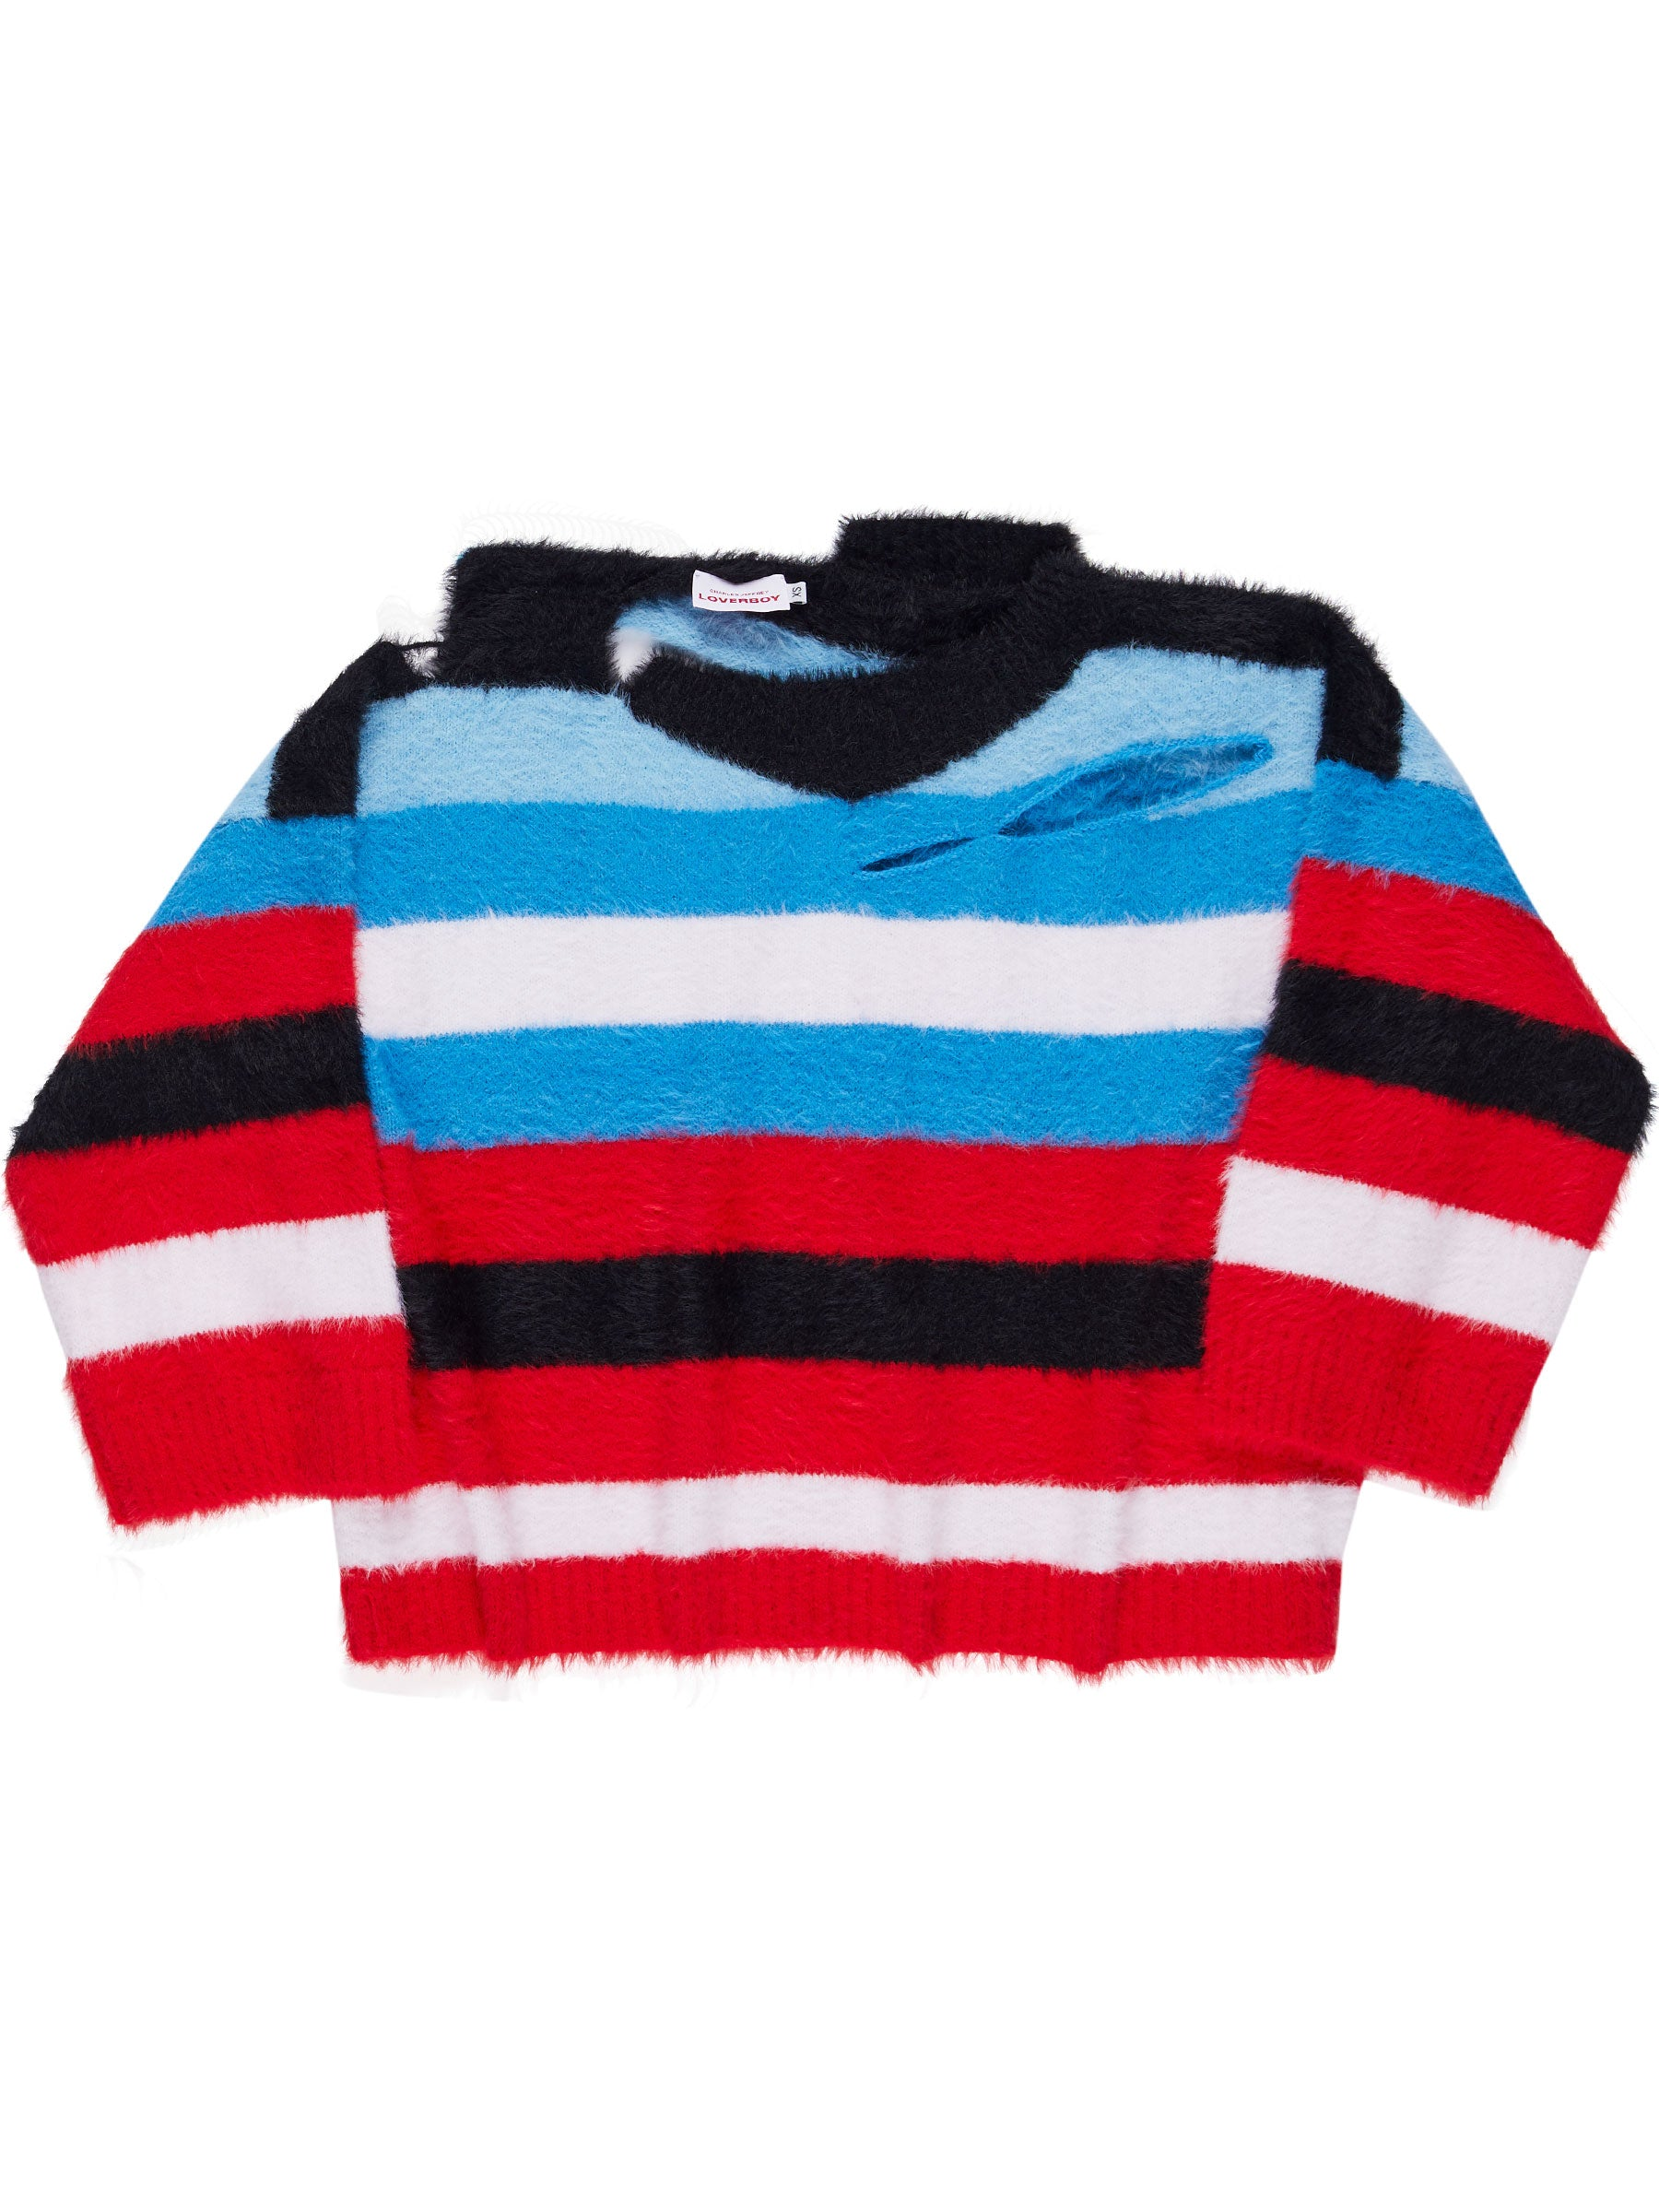 odd92 Charles Jeffrey Loverboy Fall/Winter 2019 Unisex Knitwear Wild Things Sweater - 1